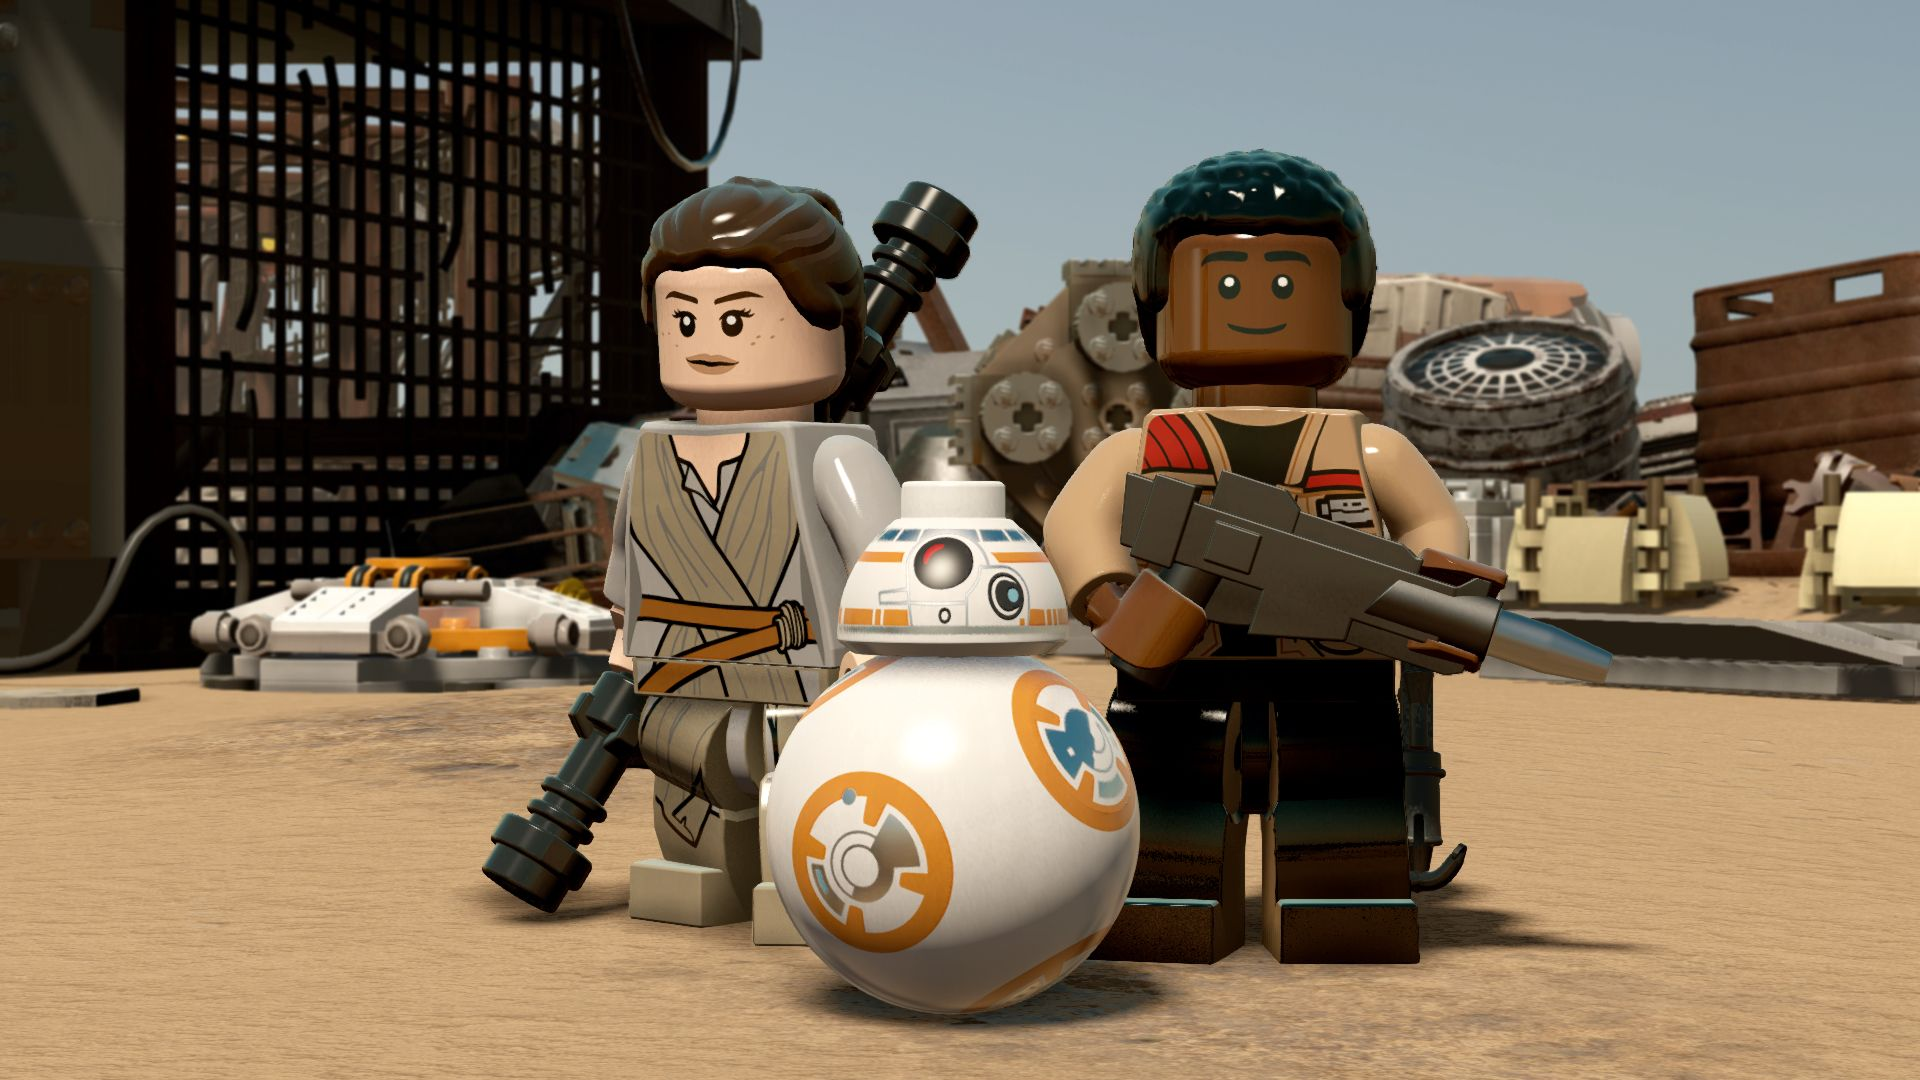 Lego Star Wars The Force Awakens Review Den Of Geek